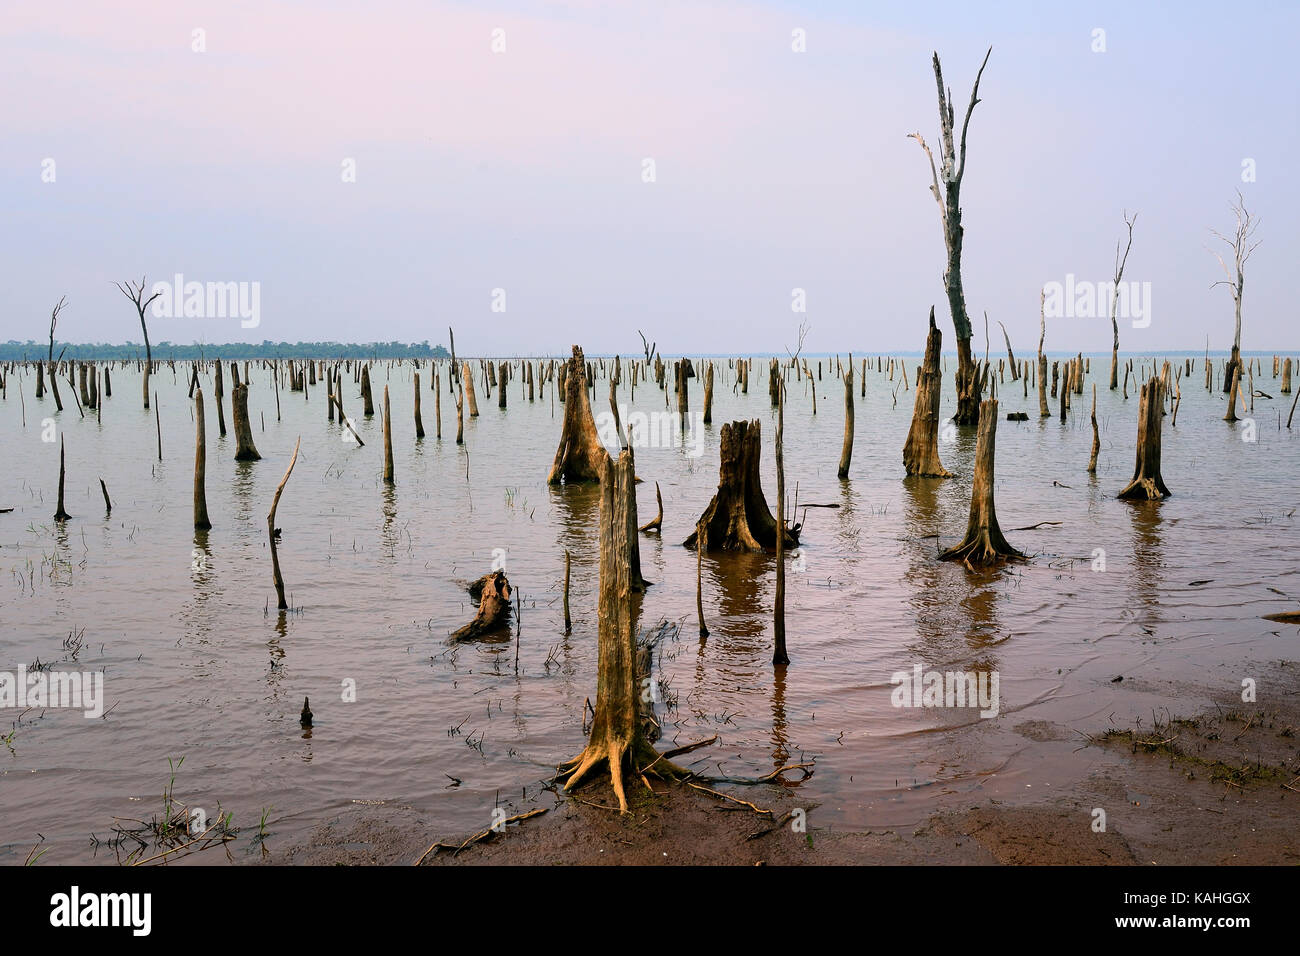 Dead, weathered trees in the Itaipu reservoir, biological reserve Tati Yupi, Hernandarias, Alto Paraná, Paraguay Stock Photo